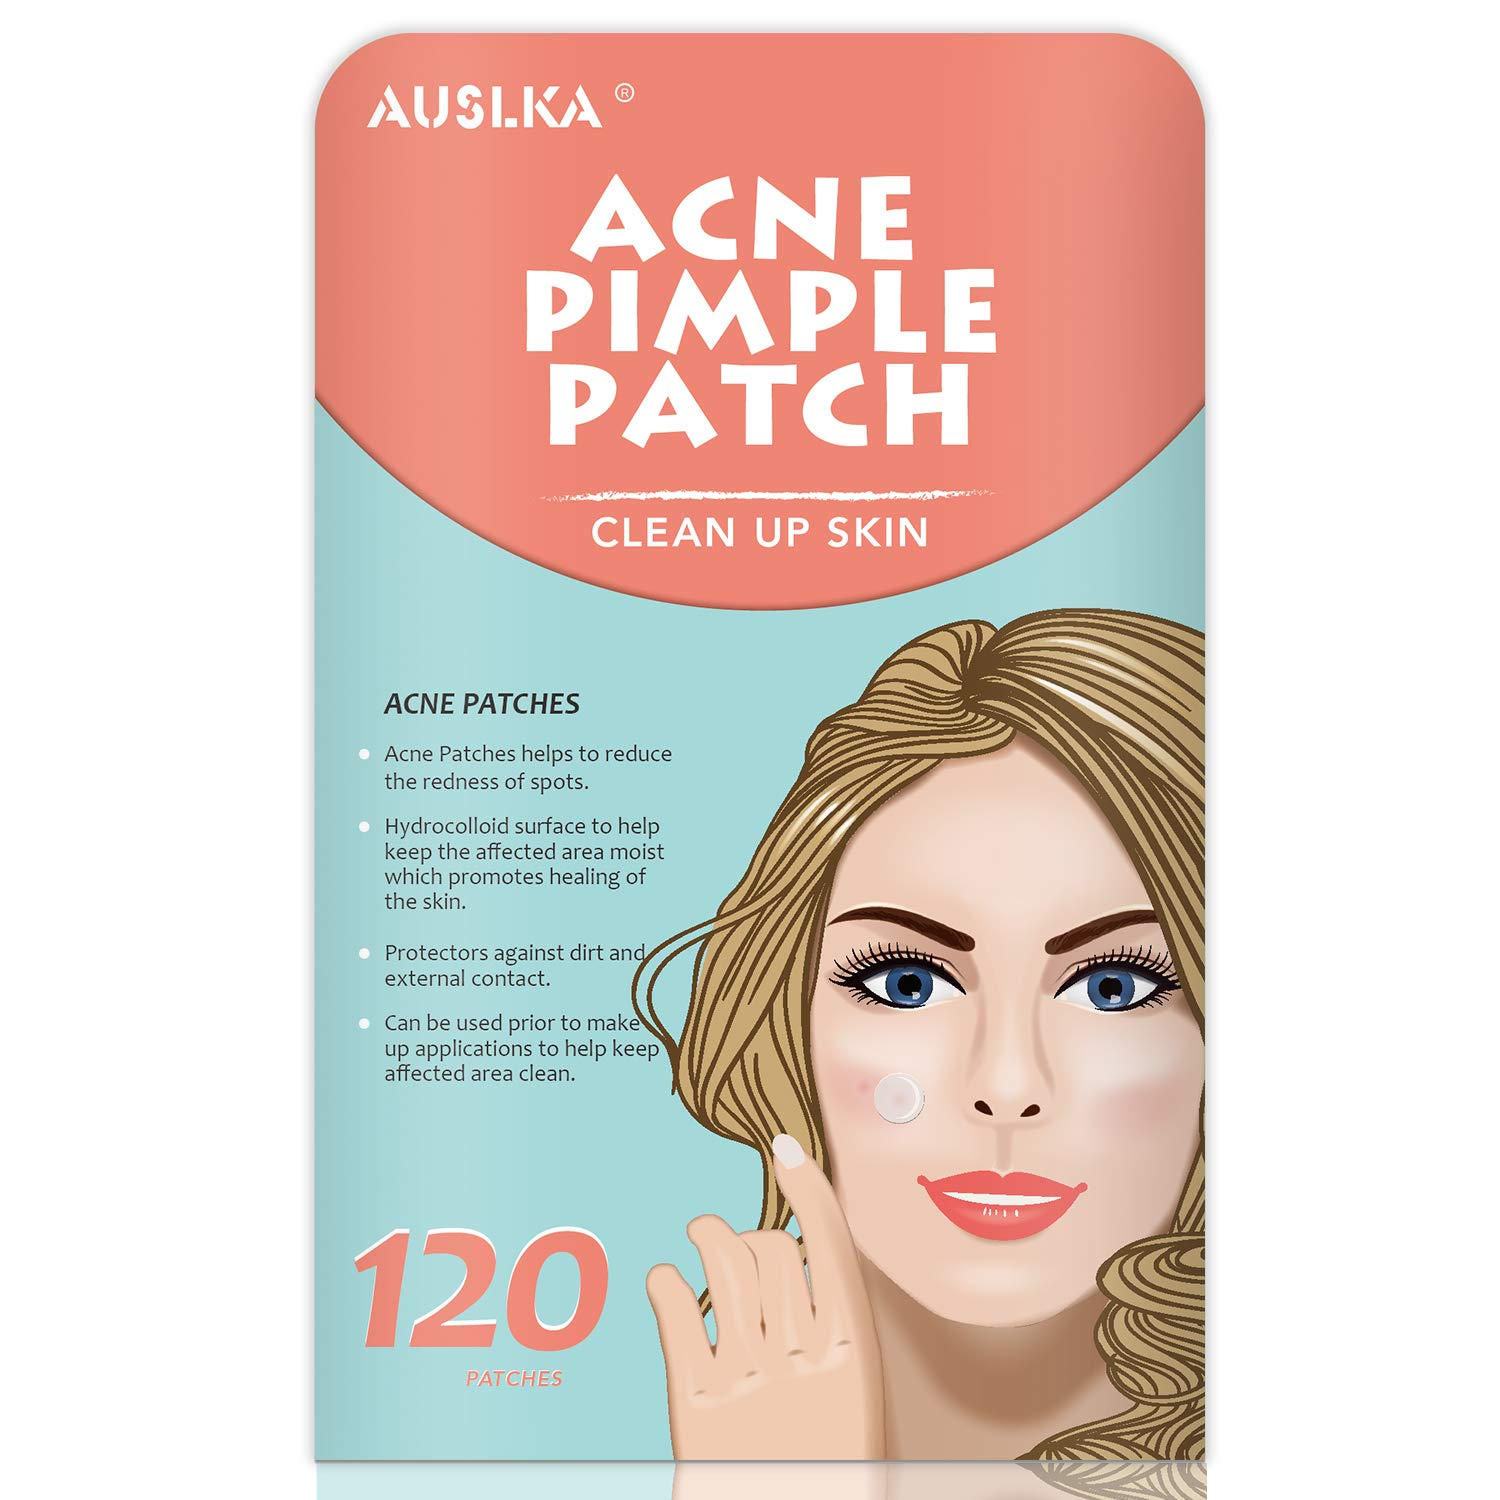 Acne Pimple Master Patch, Acne Spot Treatment, Hydrocolloid Acne Dots for Face (120 Patches) by AUSLKA